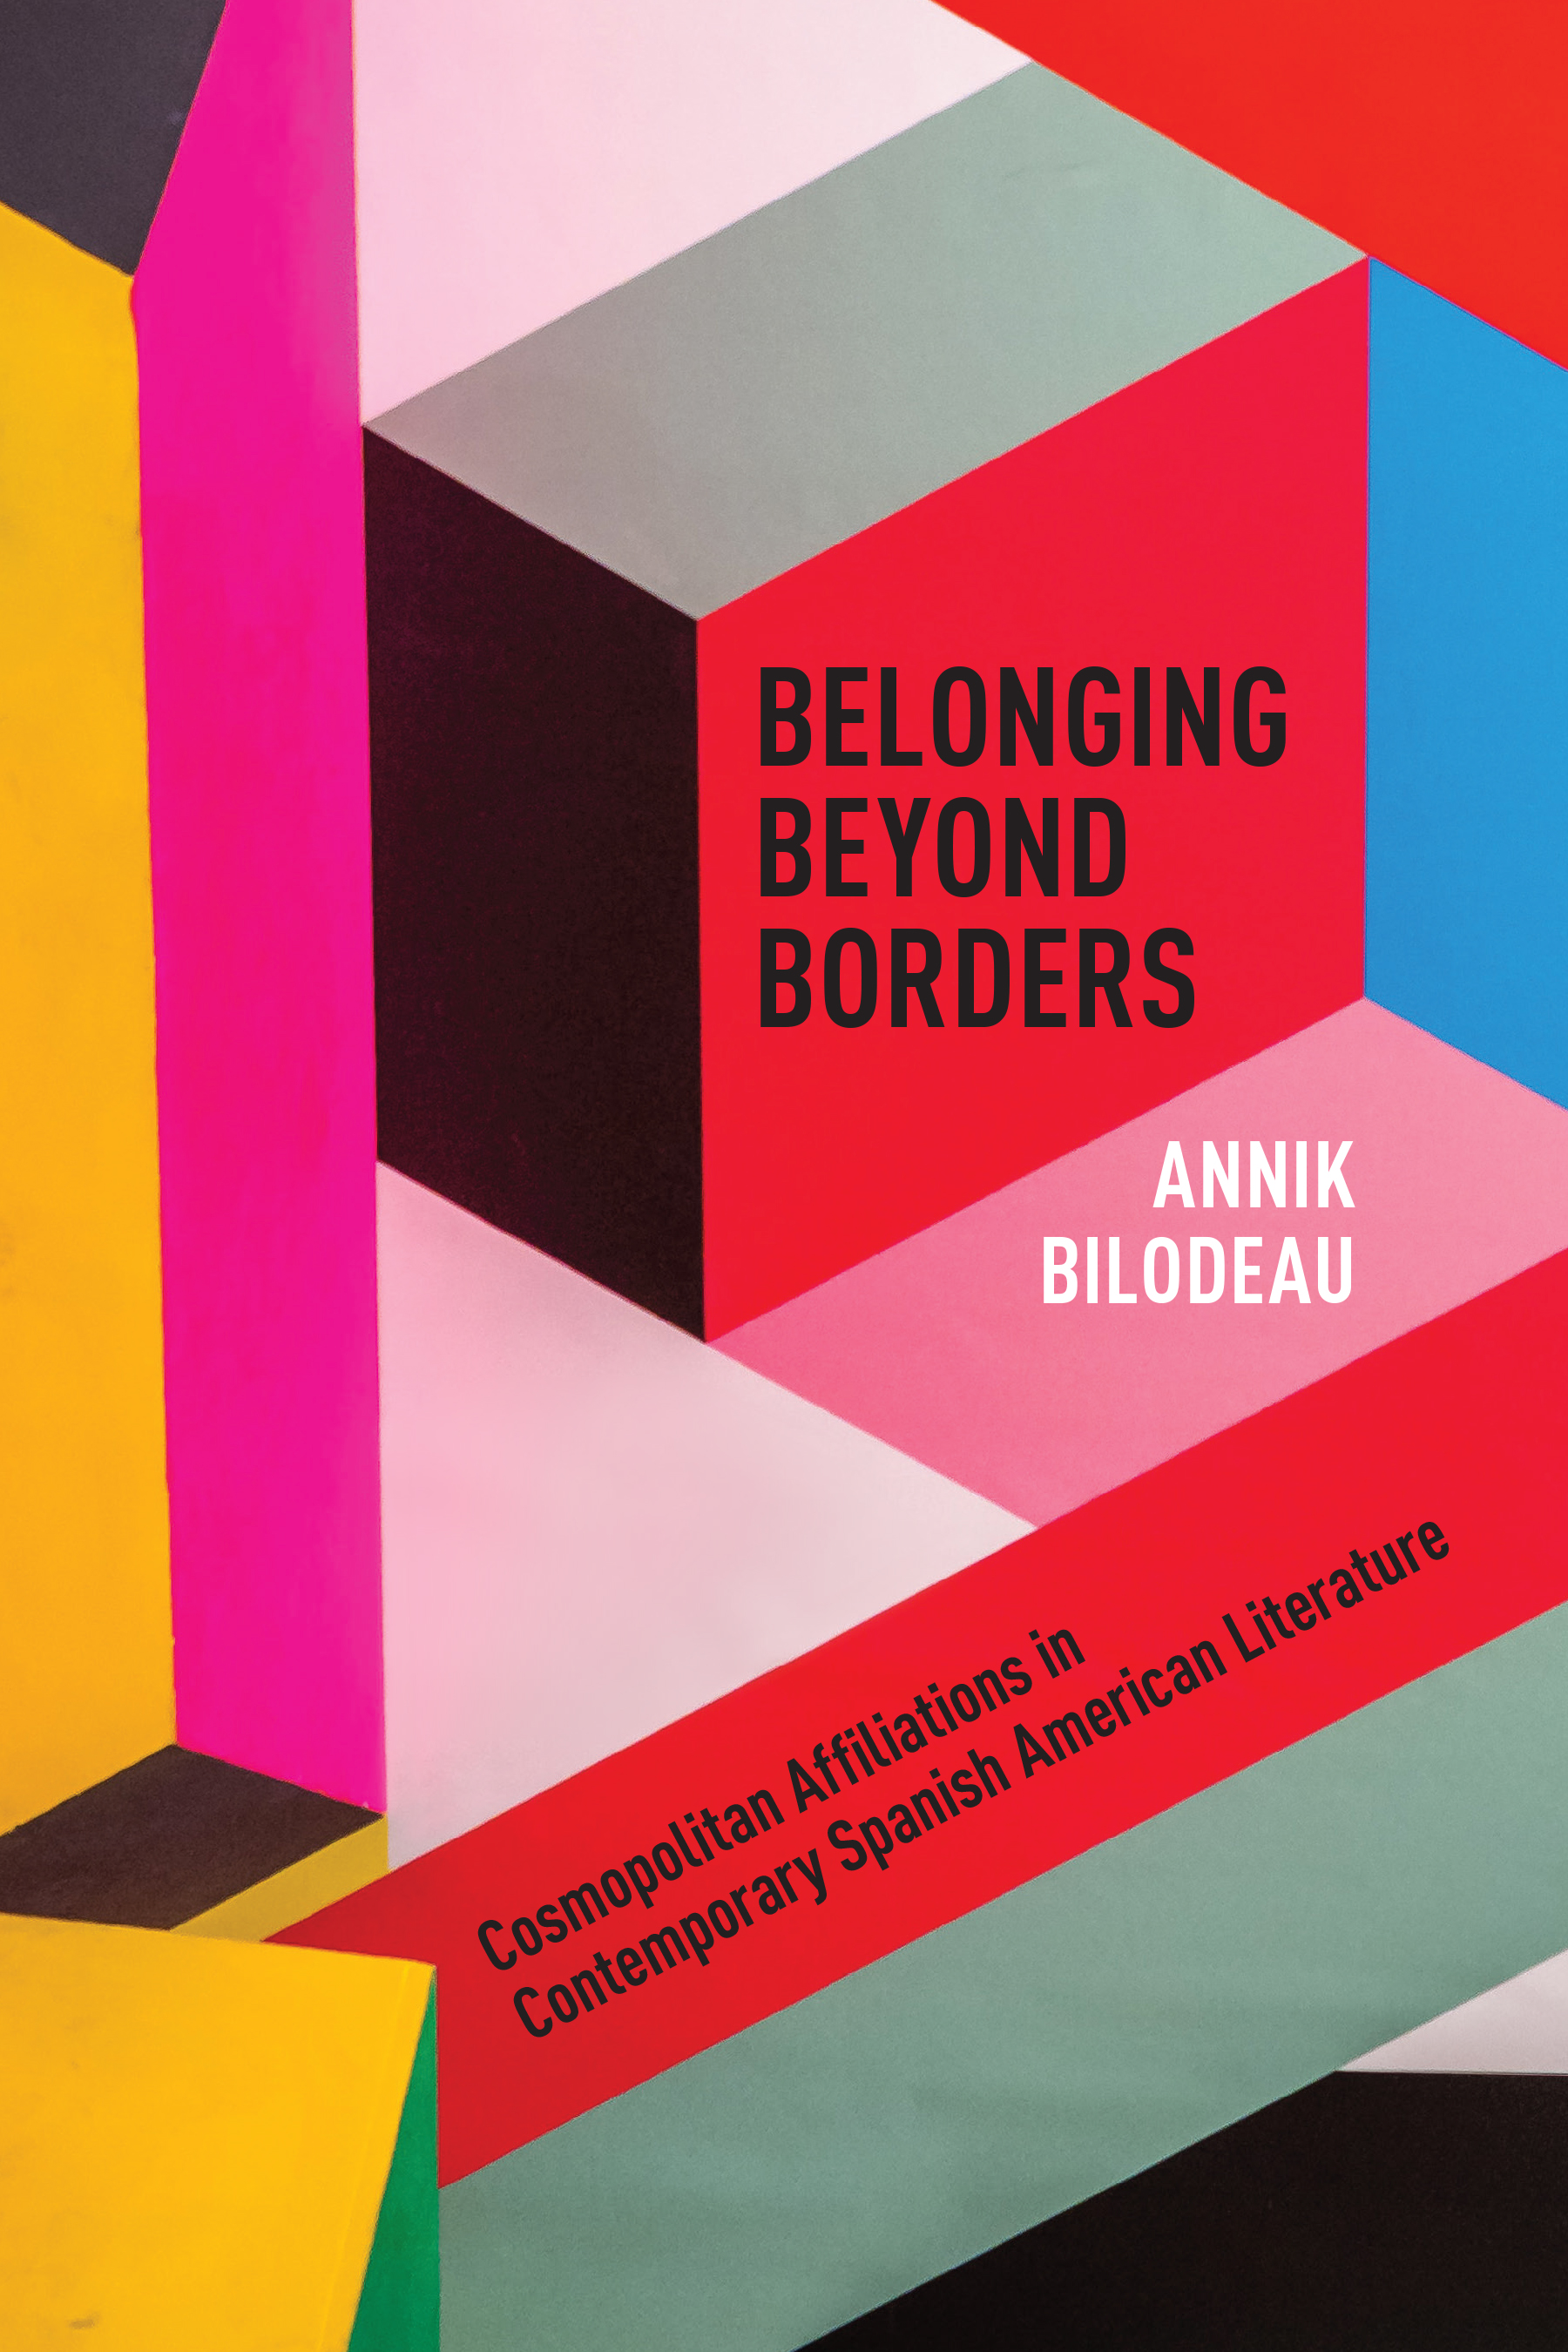 Book Cover Image for: Belonging Beyond Borders